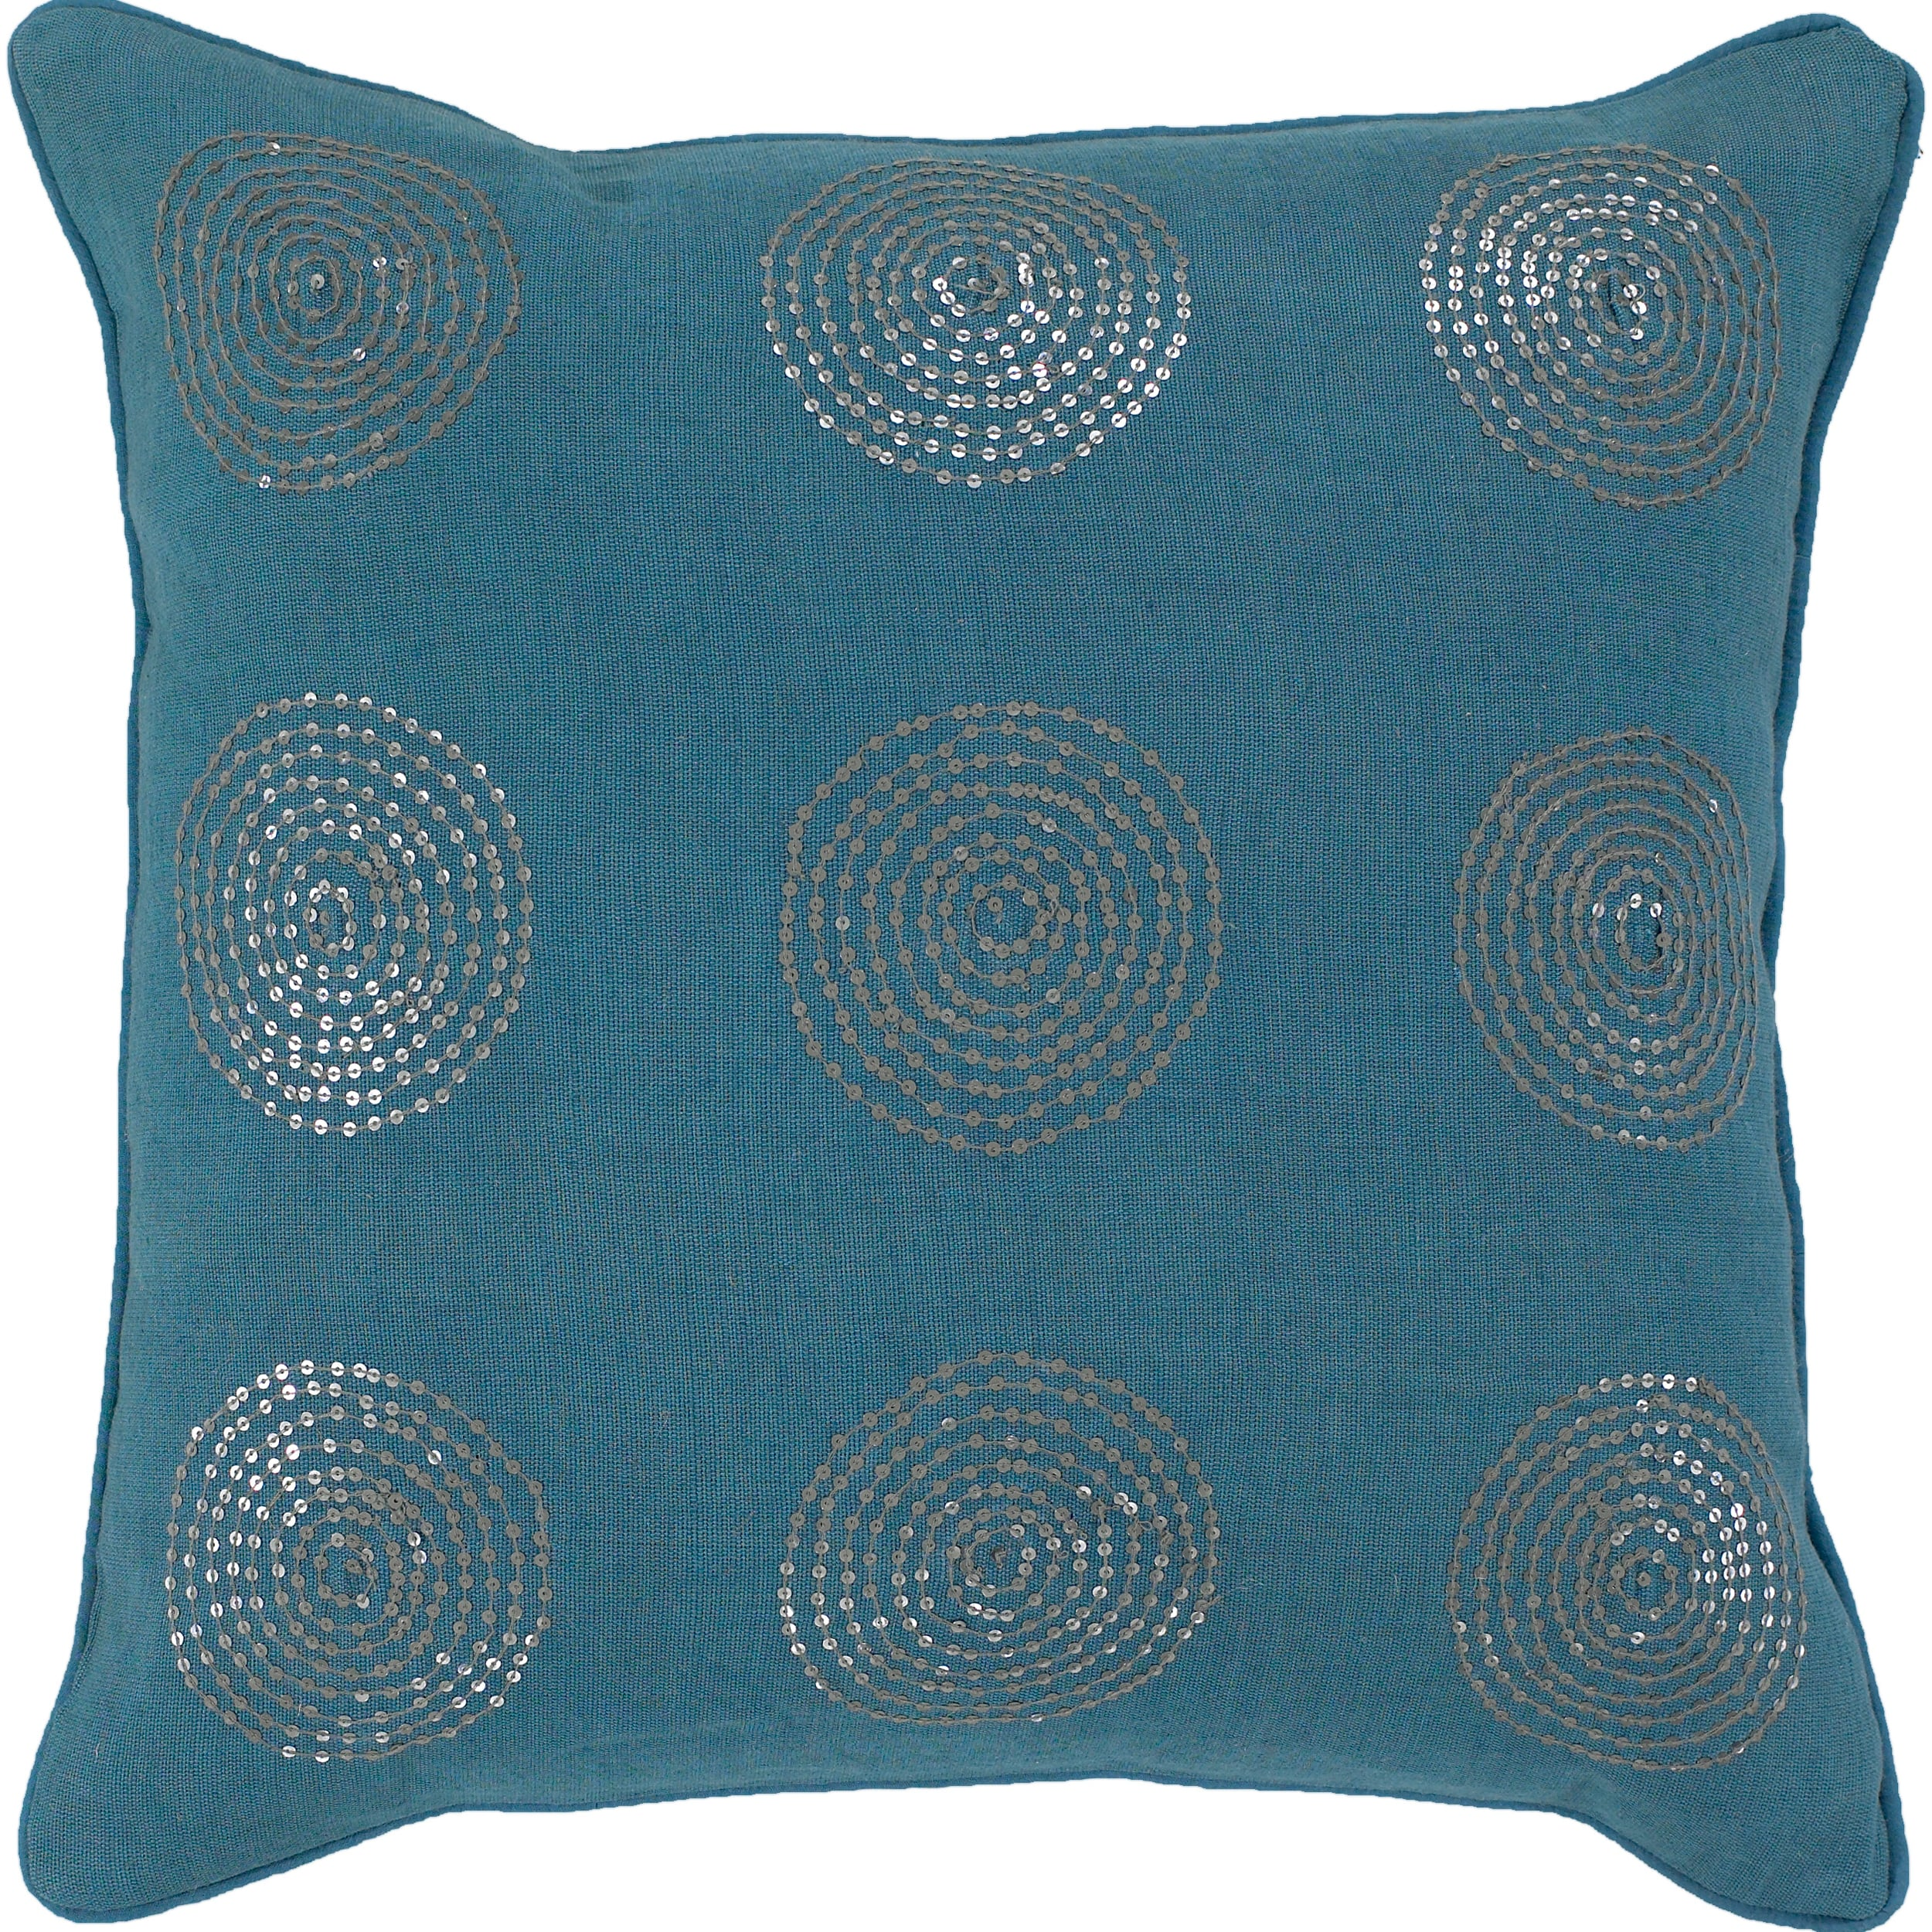 Aarau Turquoise/ Silver Decorative Pillow